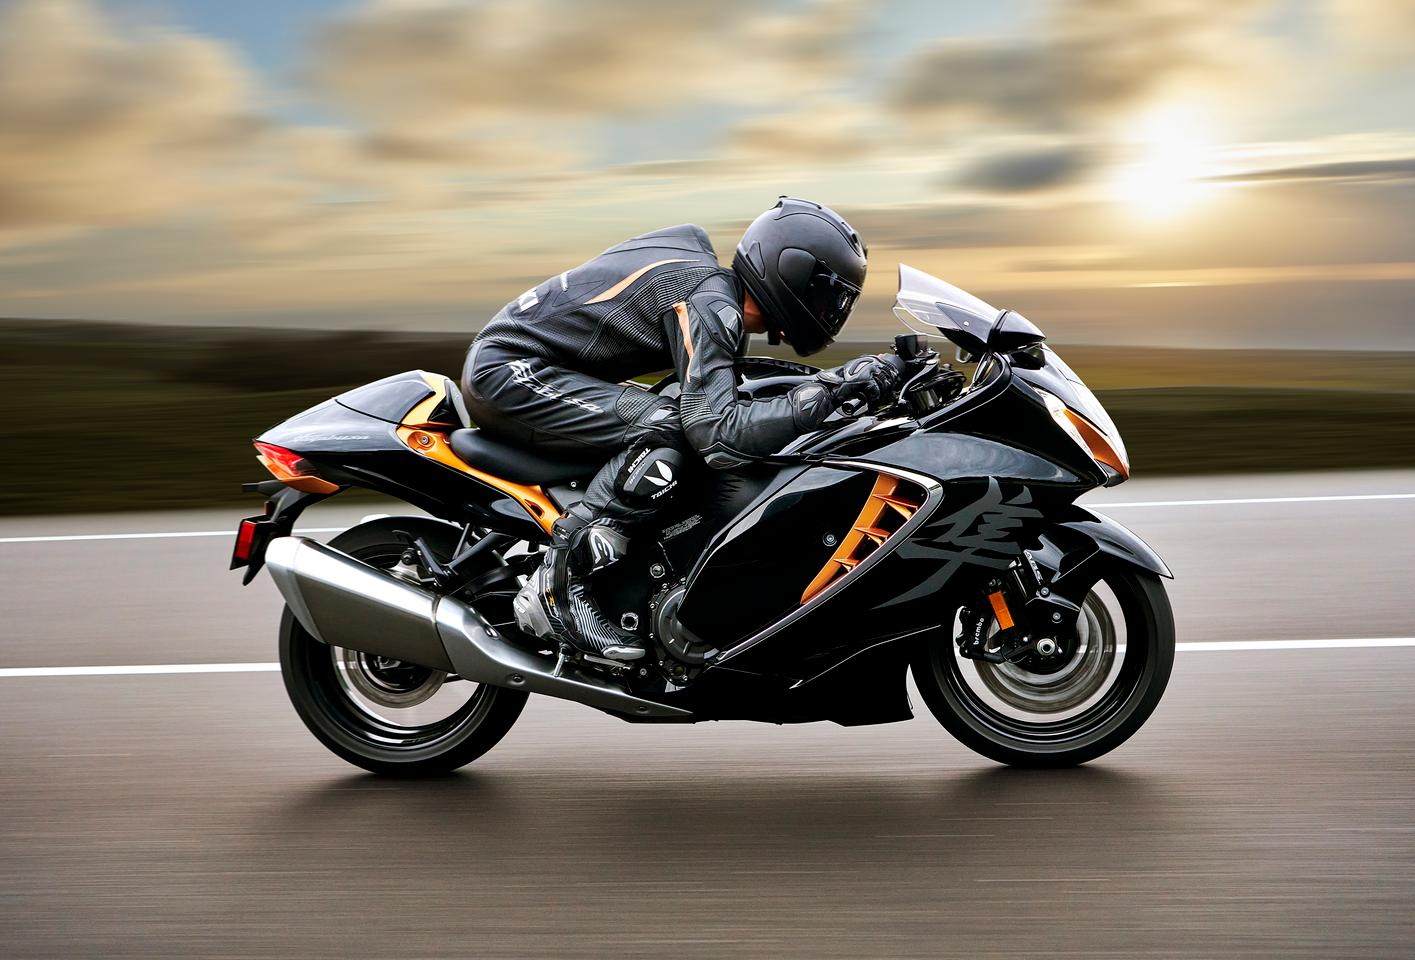 Suzuki has released a third generation of the iconic Hayabusa hypersports tourer